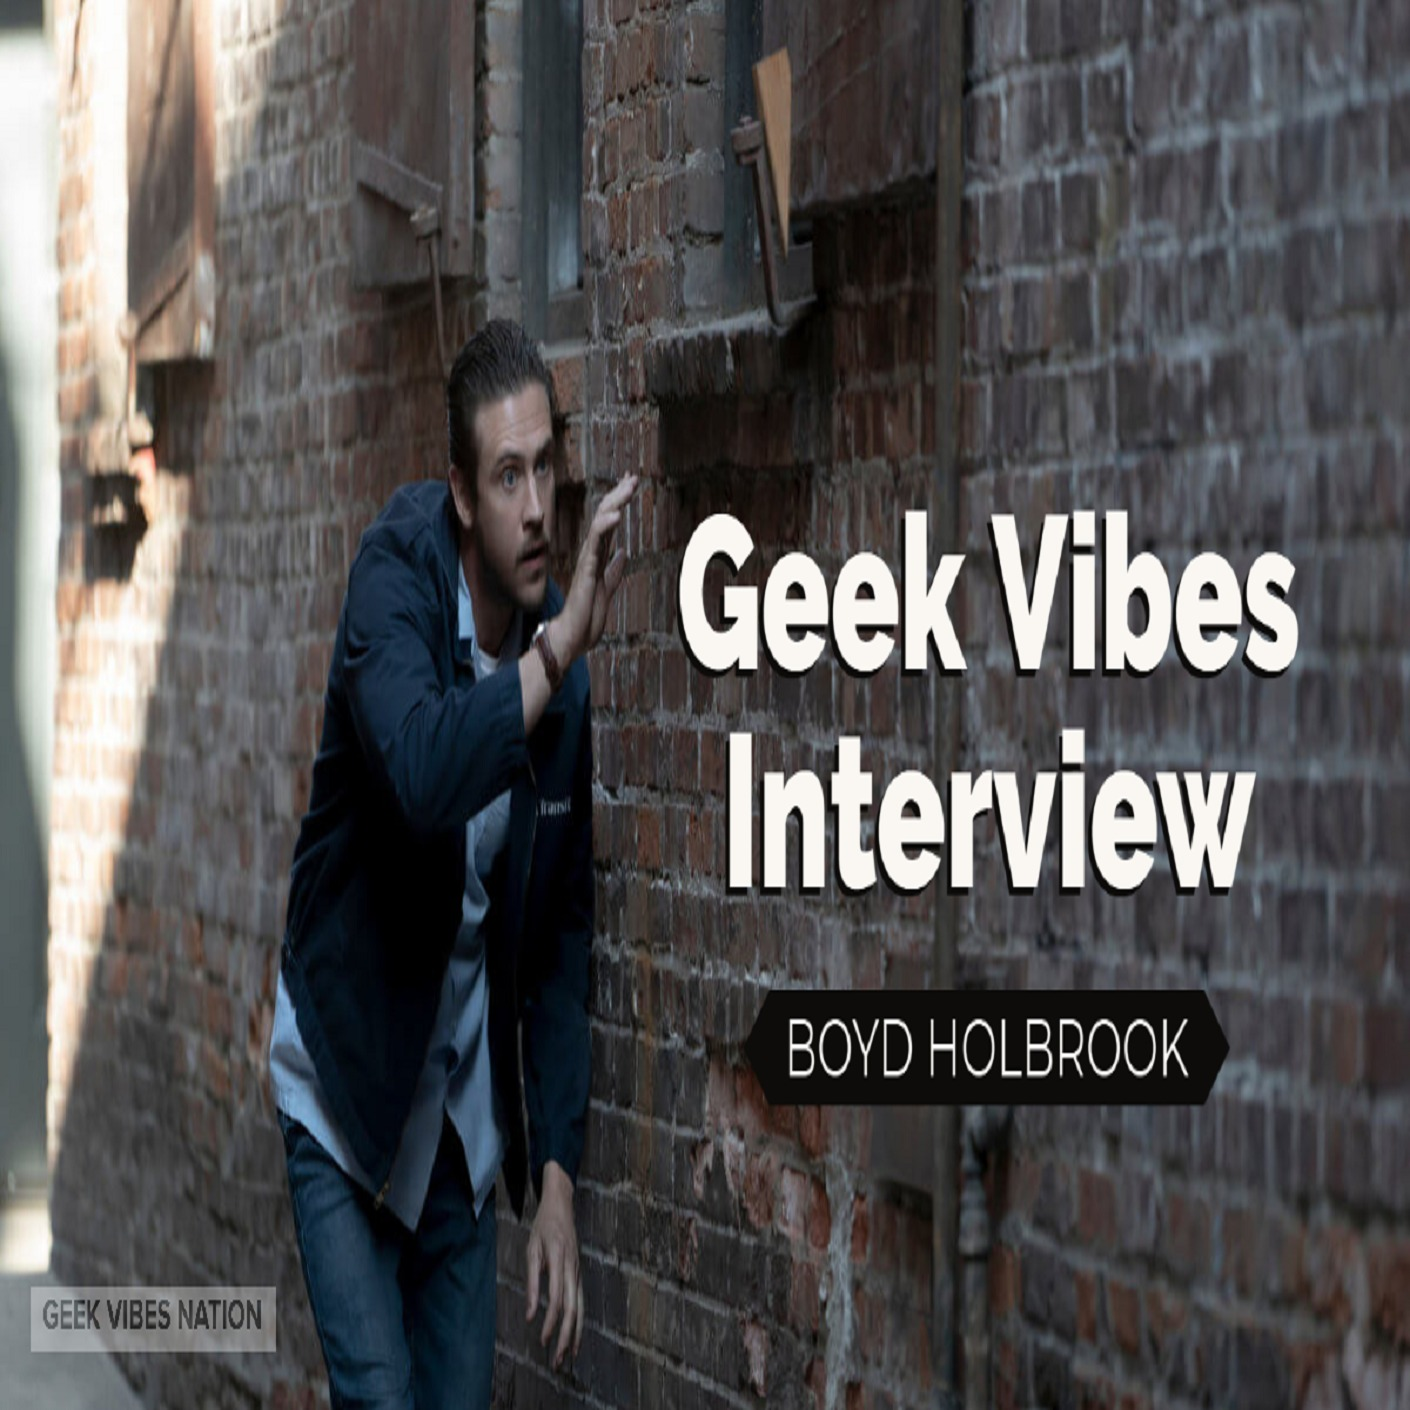 Geek Vibes Interview w/ Boyd Holbrook